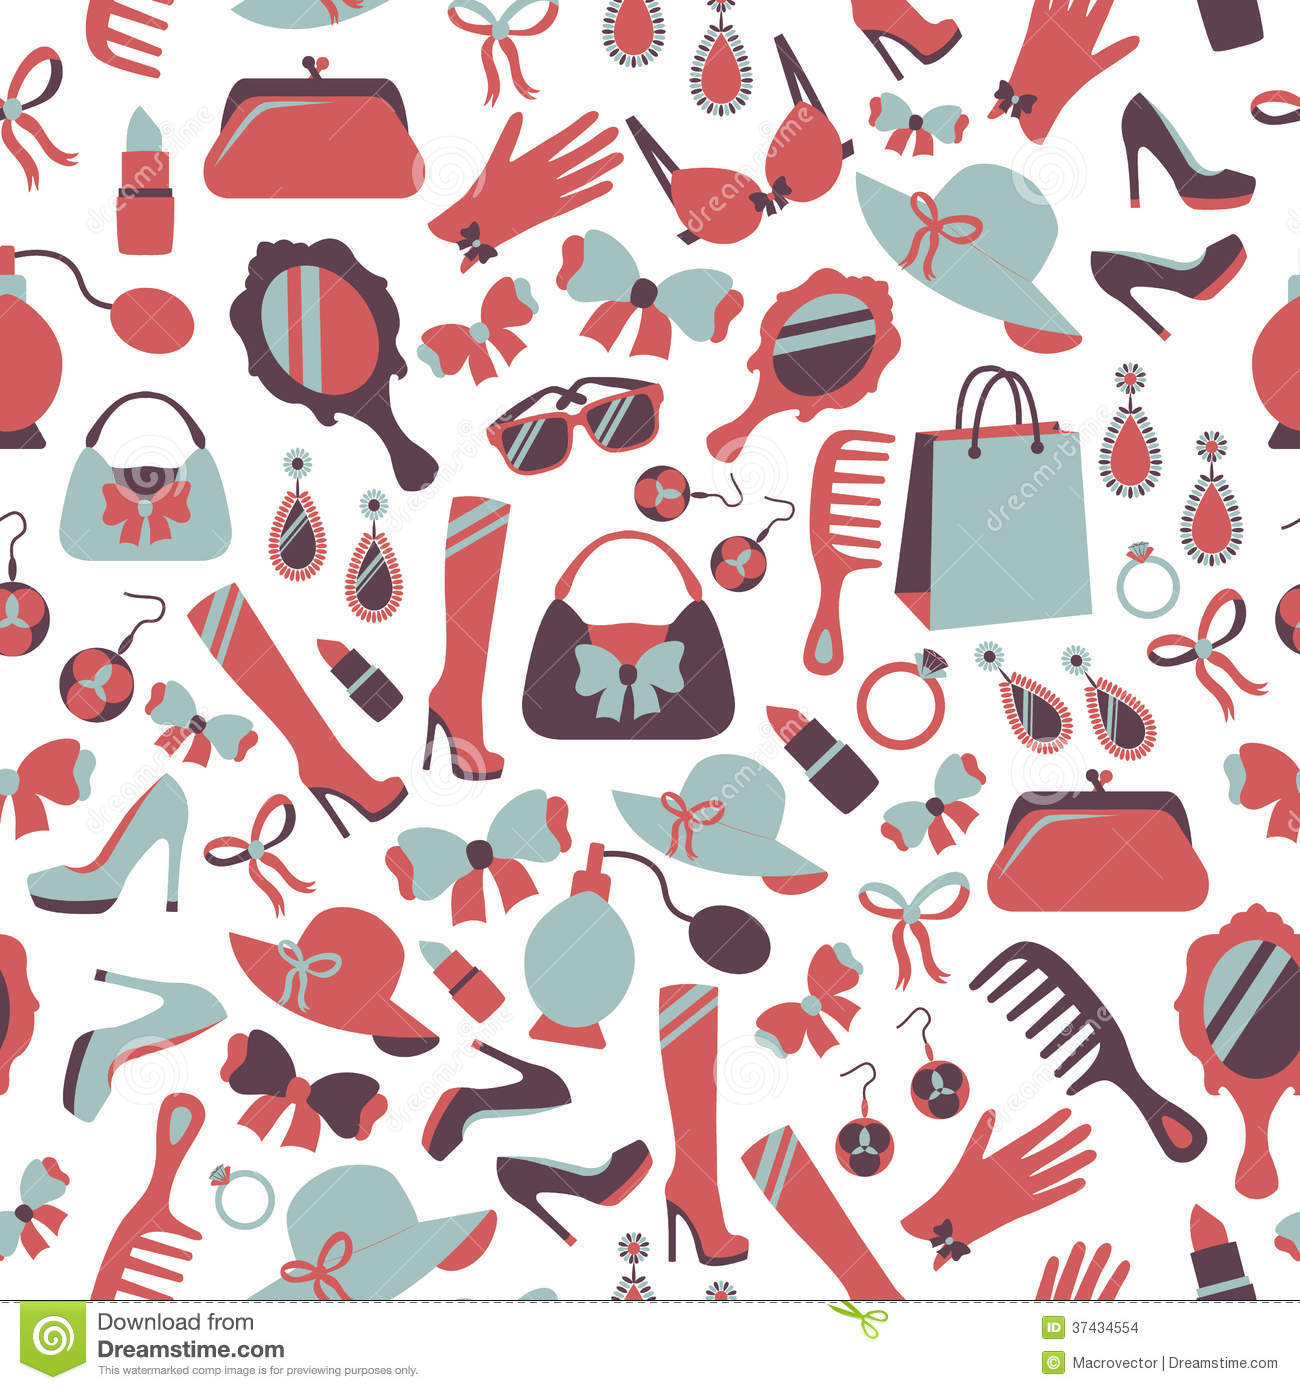 Download Seamless Woman Accessories Background Stock Vector - Illustration of illustration, feminine: 37434554